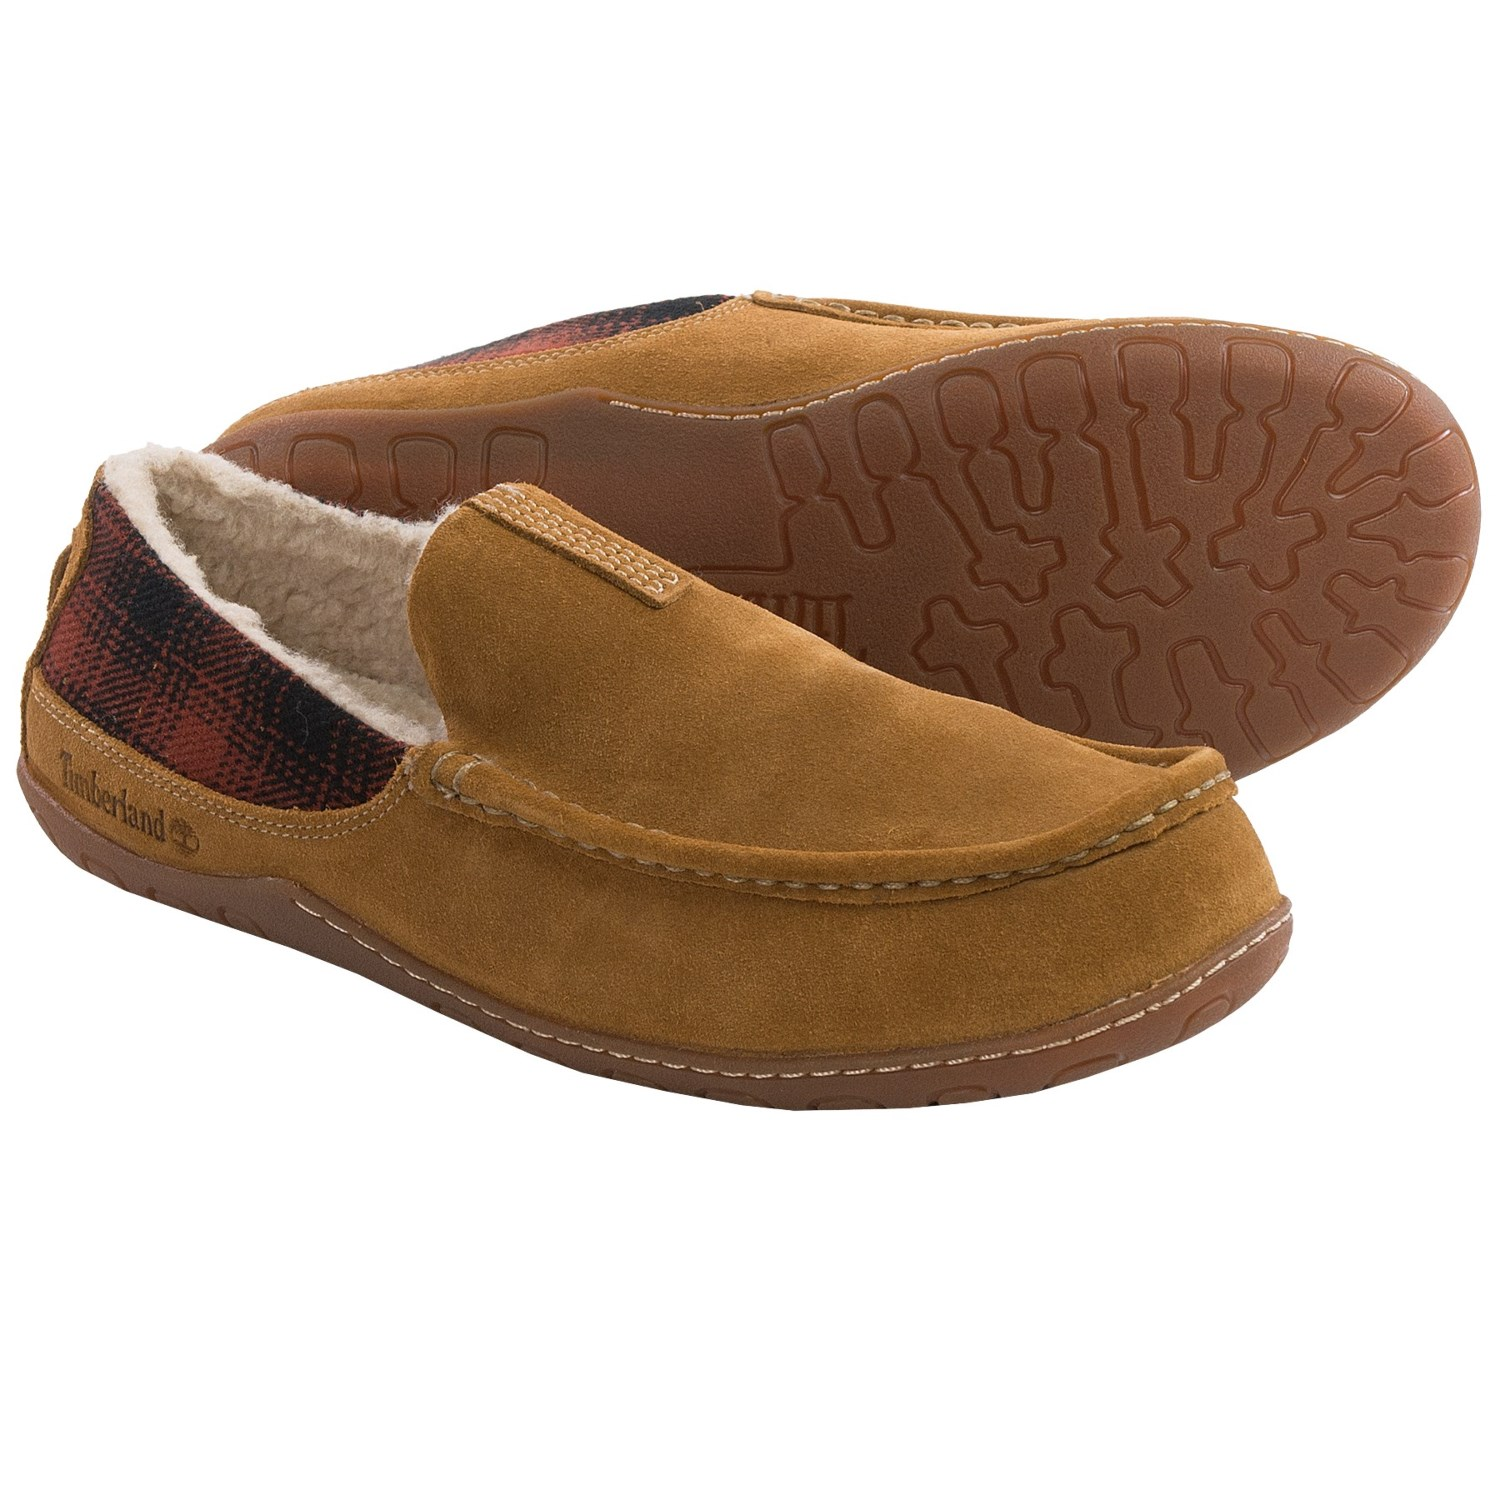 Find suede slippers from a vast selection of Men's Slippers. Get great deals on eBay!